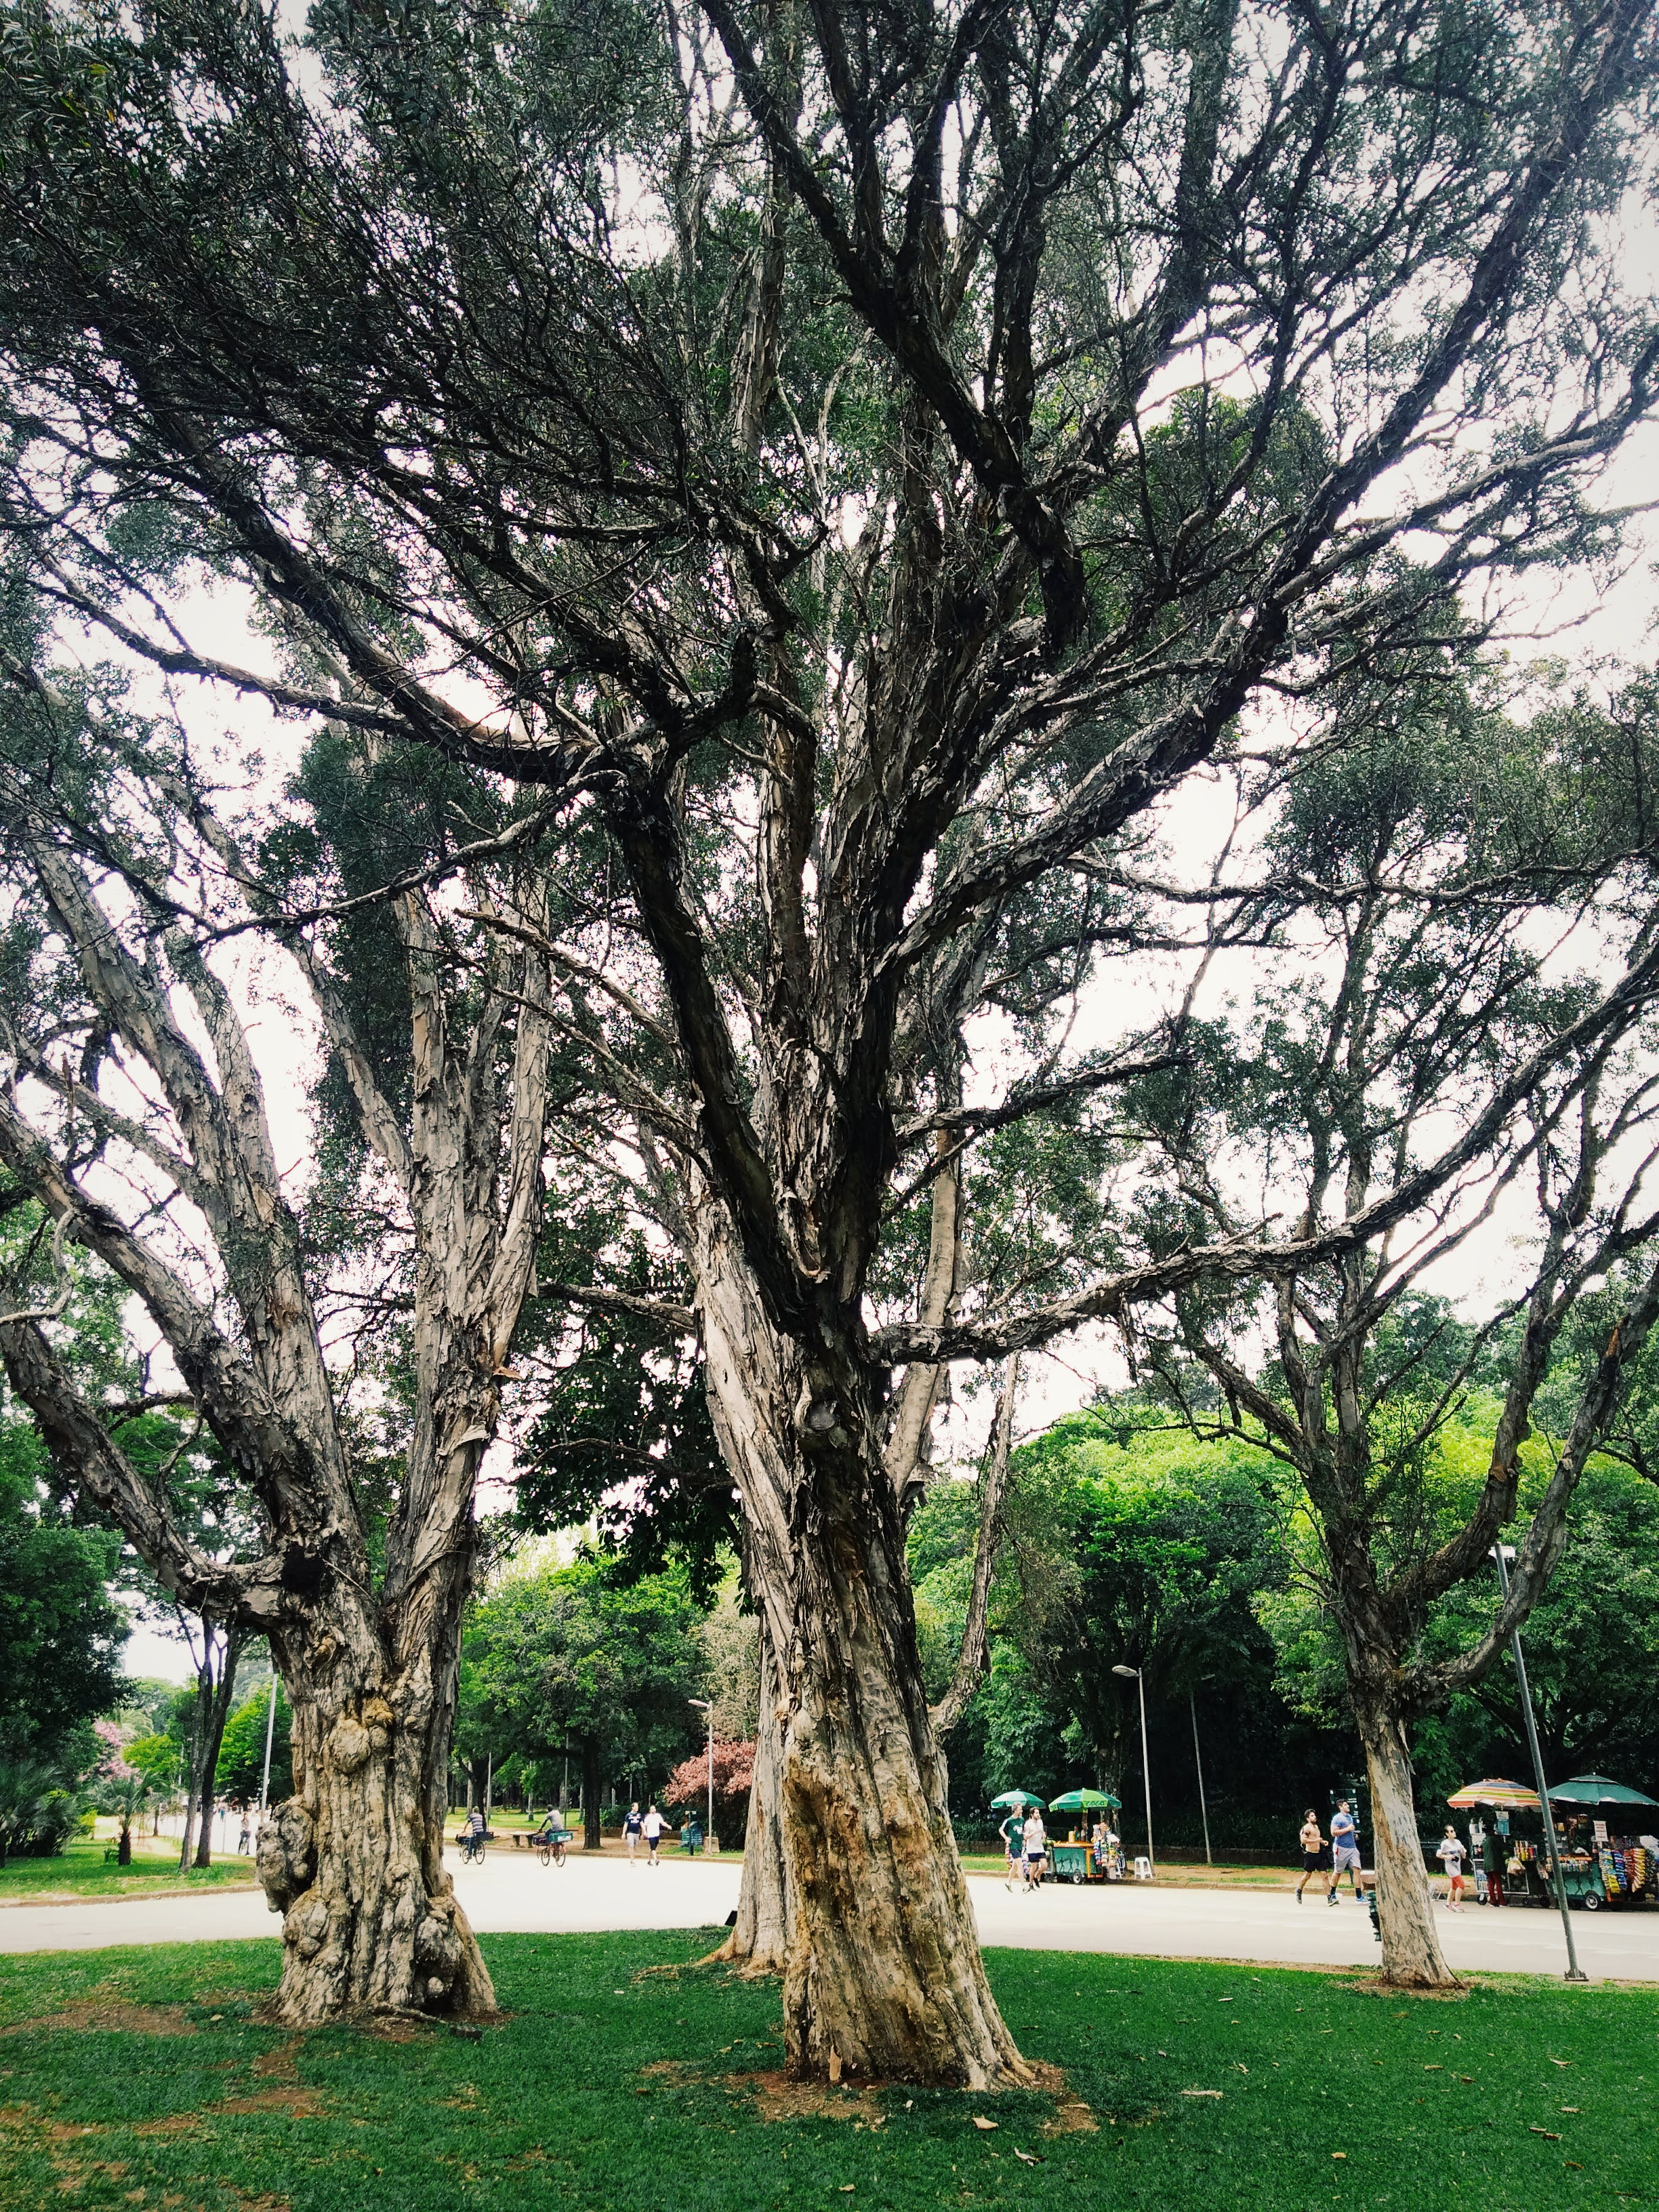 Trees Surrounding Park